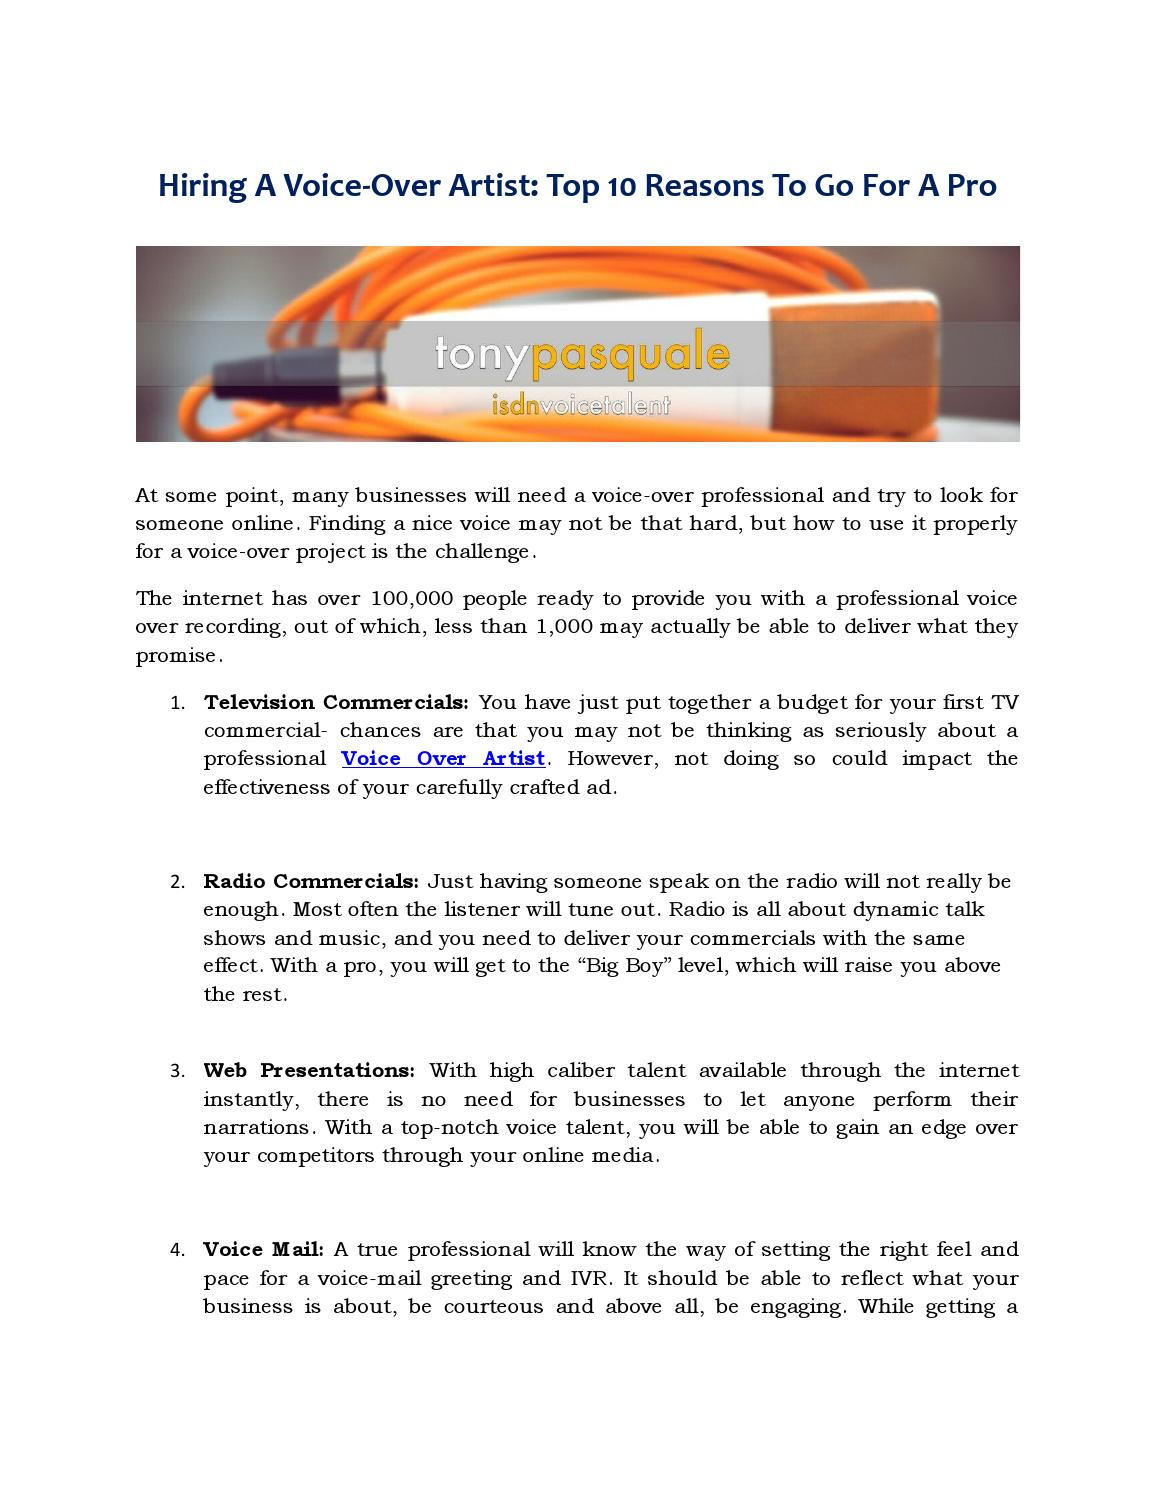 Hiring A Voice Over Artist Top 10 Reasons To Go For A Pro By Tony